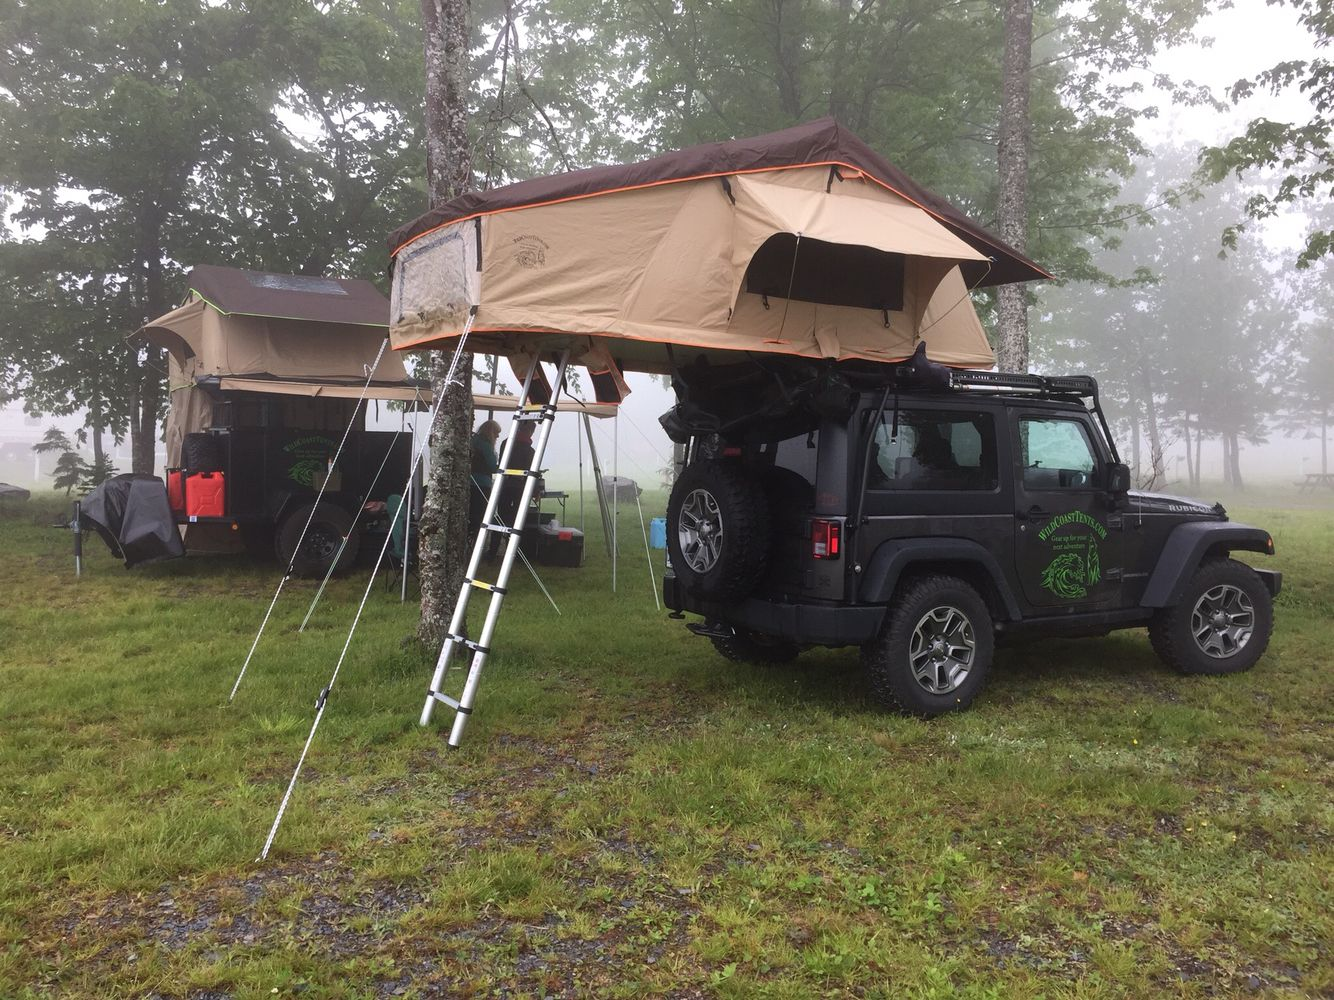 Wild Coast roof top tents Canada for over landing and c&ing. Easy and affordable vehicle roof top tents. & Sun dog rtt | camping | Pinterest | Roof top tent